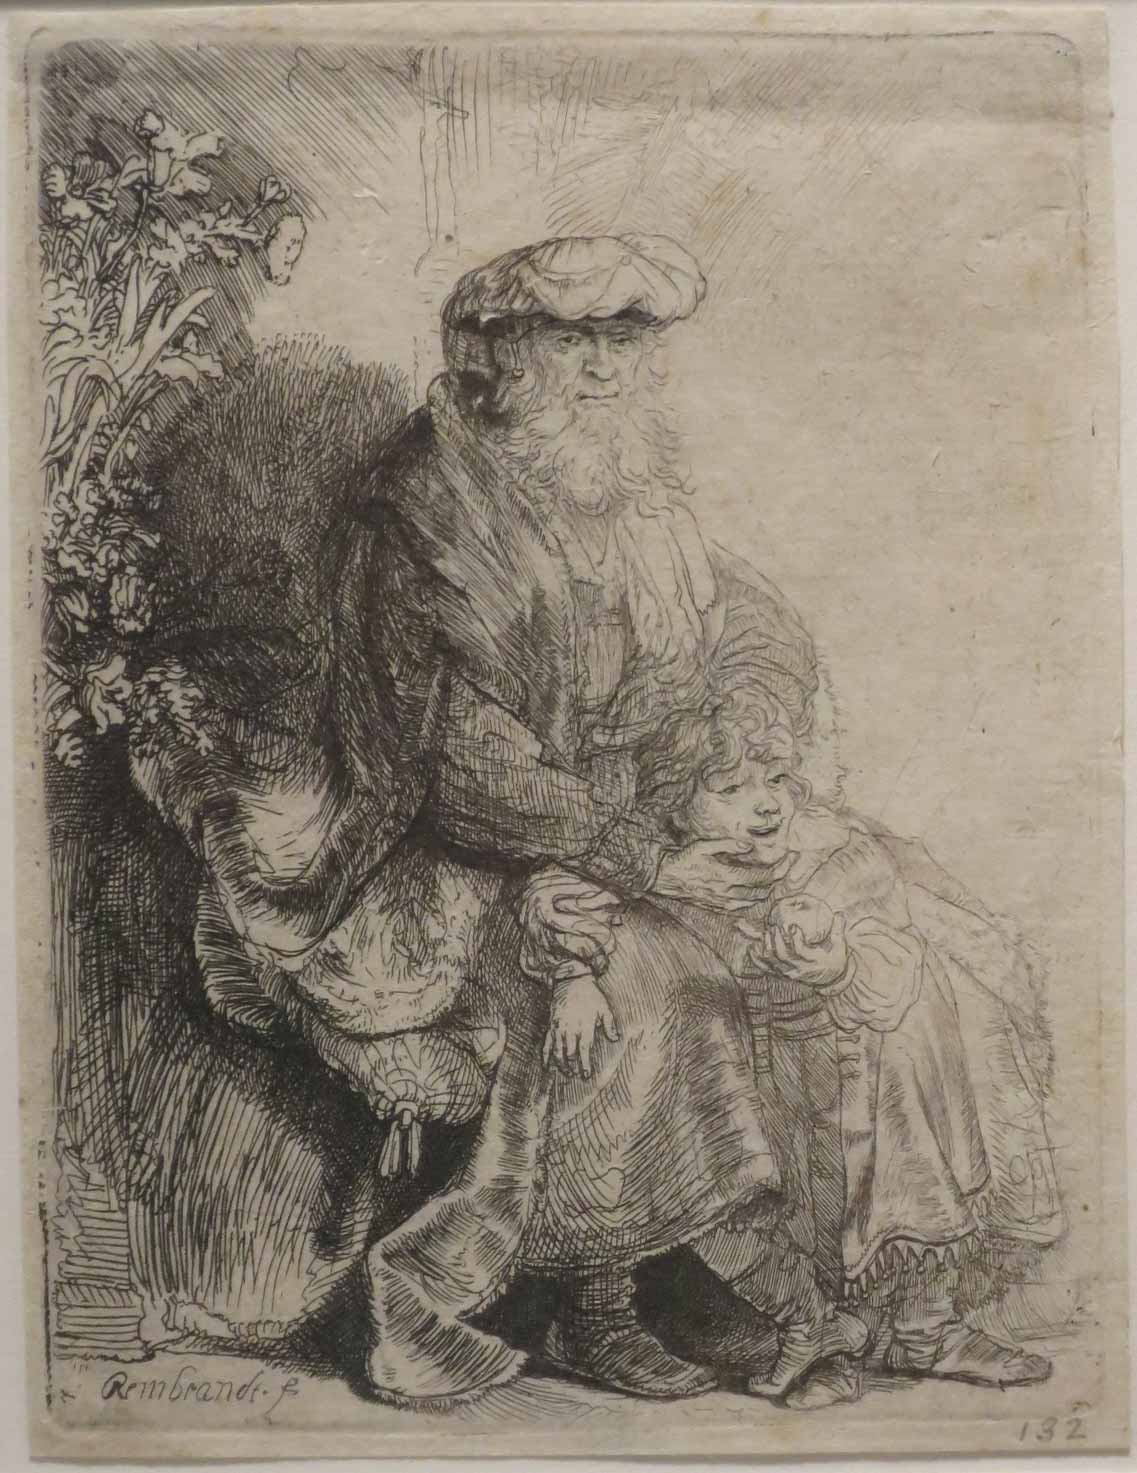 4-Rembrandt-Abraham_Caressing_Isaac,_etching_by_Rembrandt,_Honolulu_Museum_of_Art